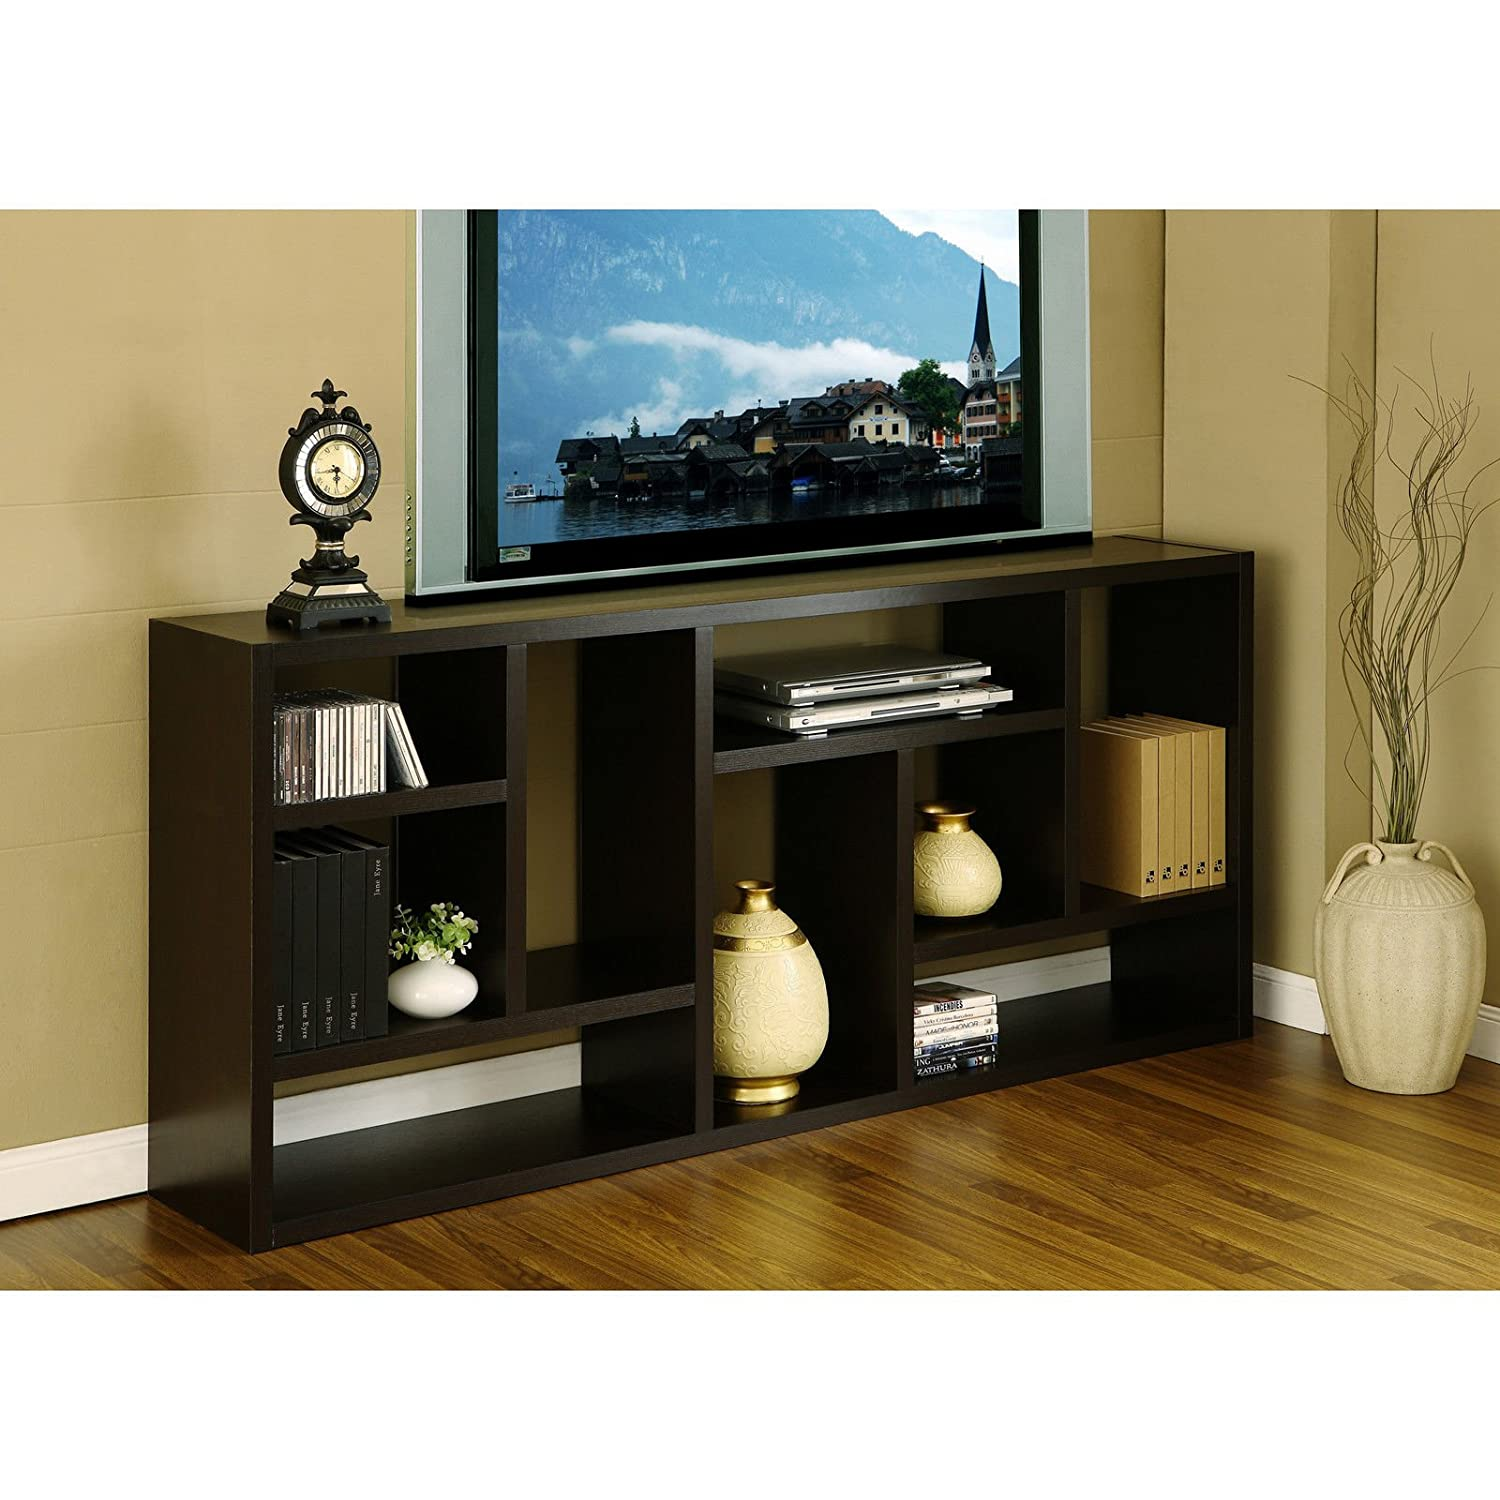 tv stand at more pin best and fiveinchfloppy furniture bookcase americas check bookcases with